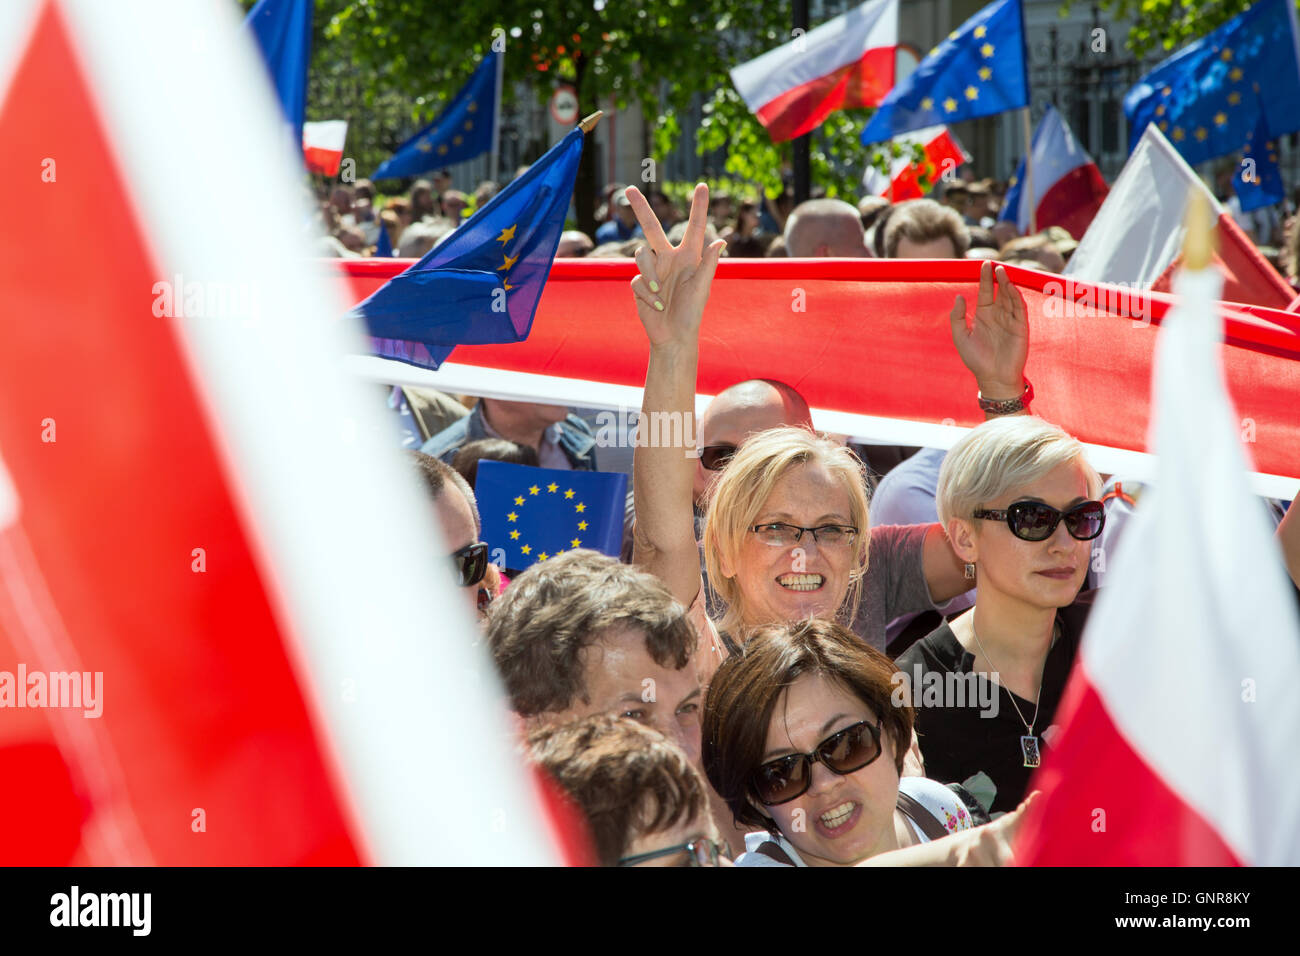 Warsaw, Poland, demonstrators with Polish and European flags - Stock Image